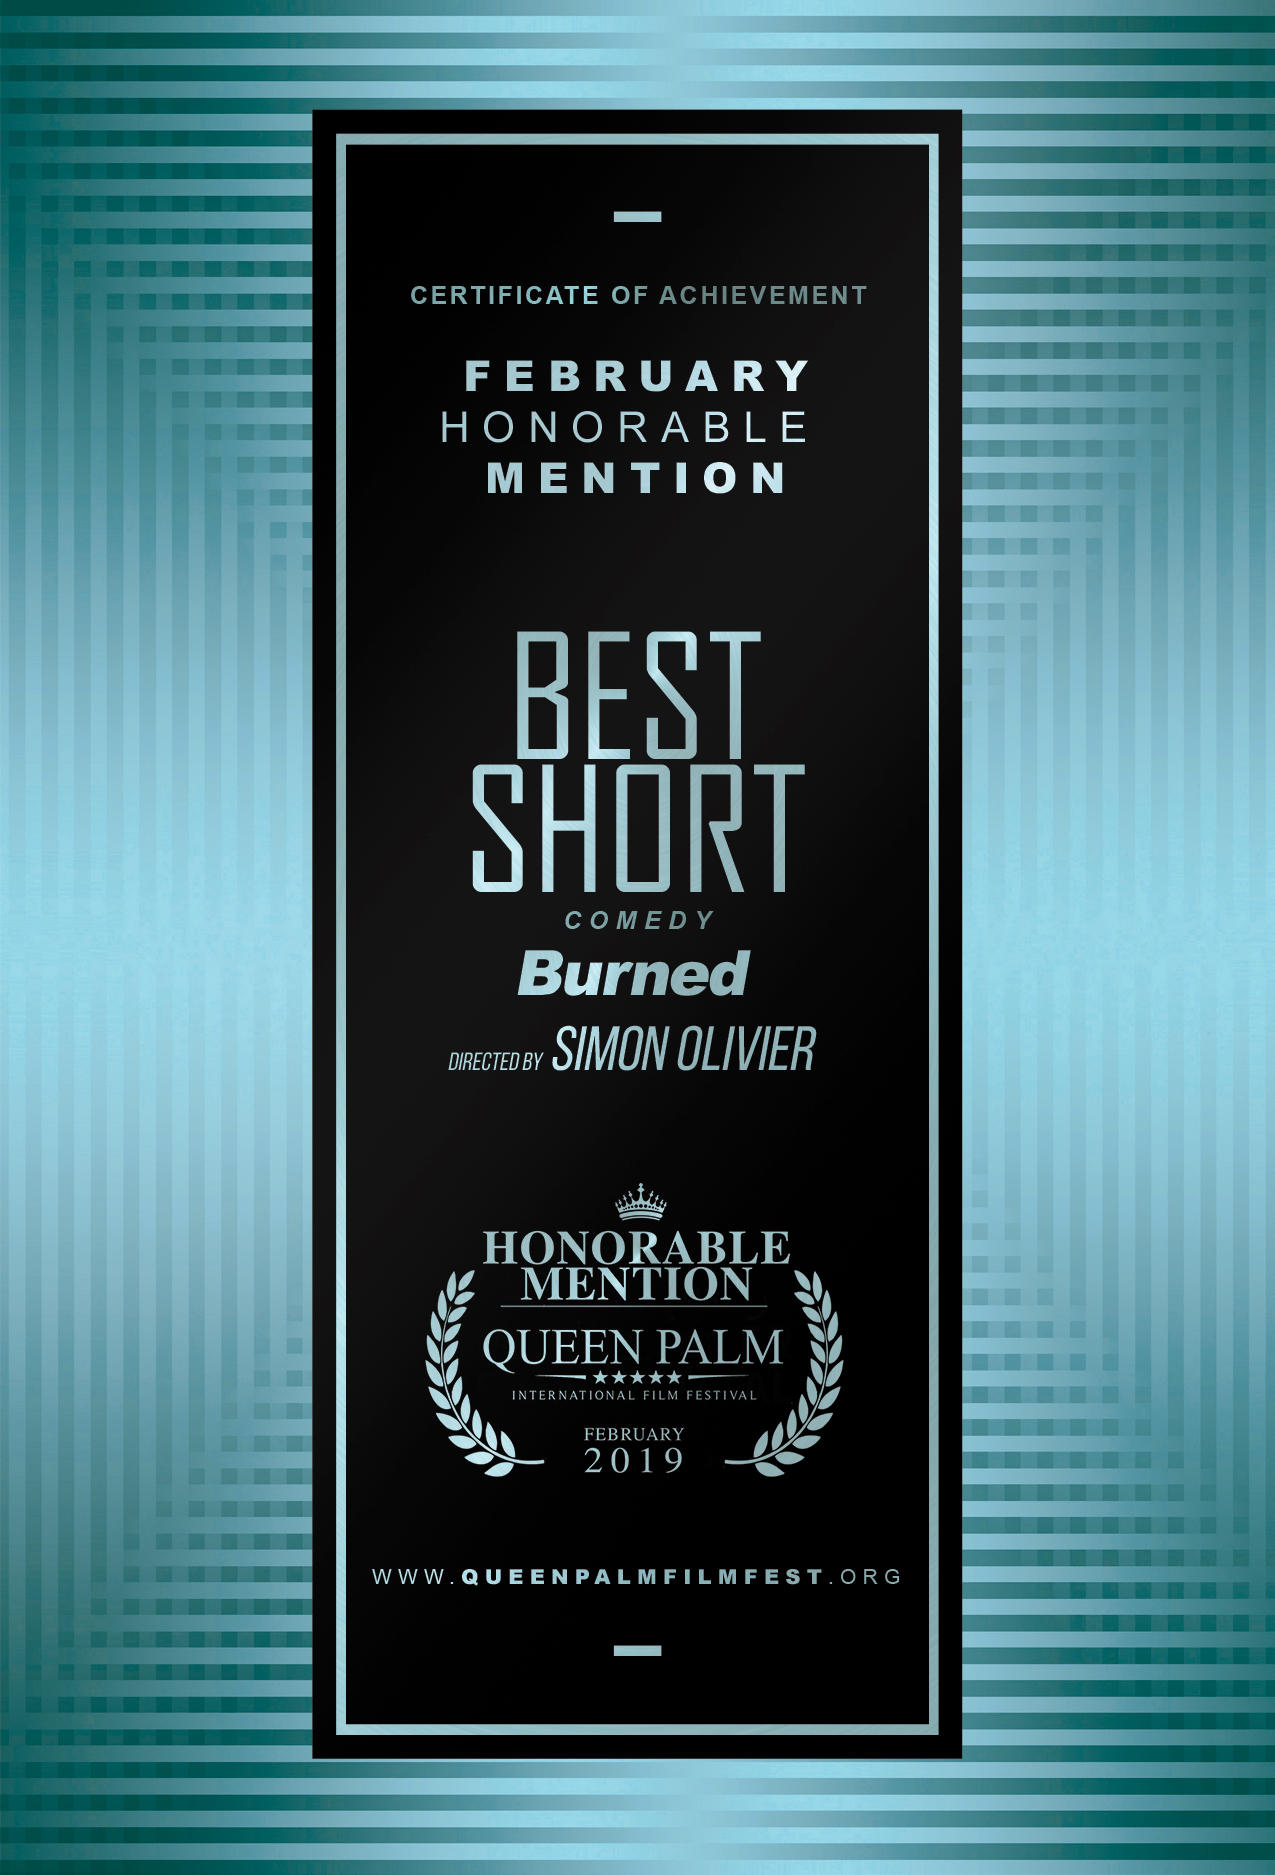 QPIFF HONORABLE MENTION CERTIFICATE - BEST SHORT - COMEDY - SIDE B.jpg